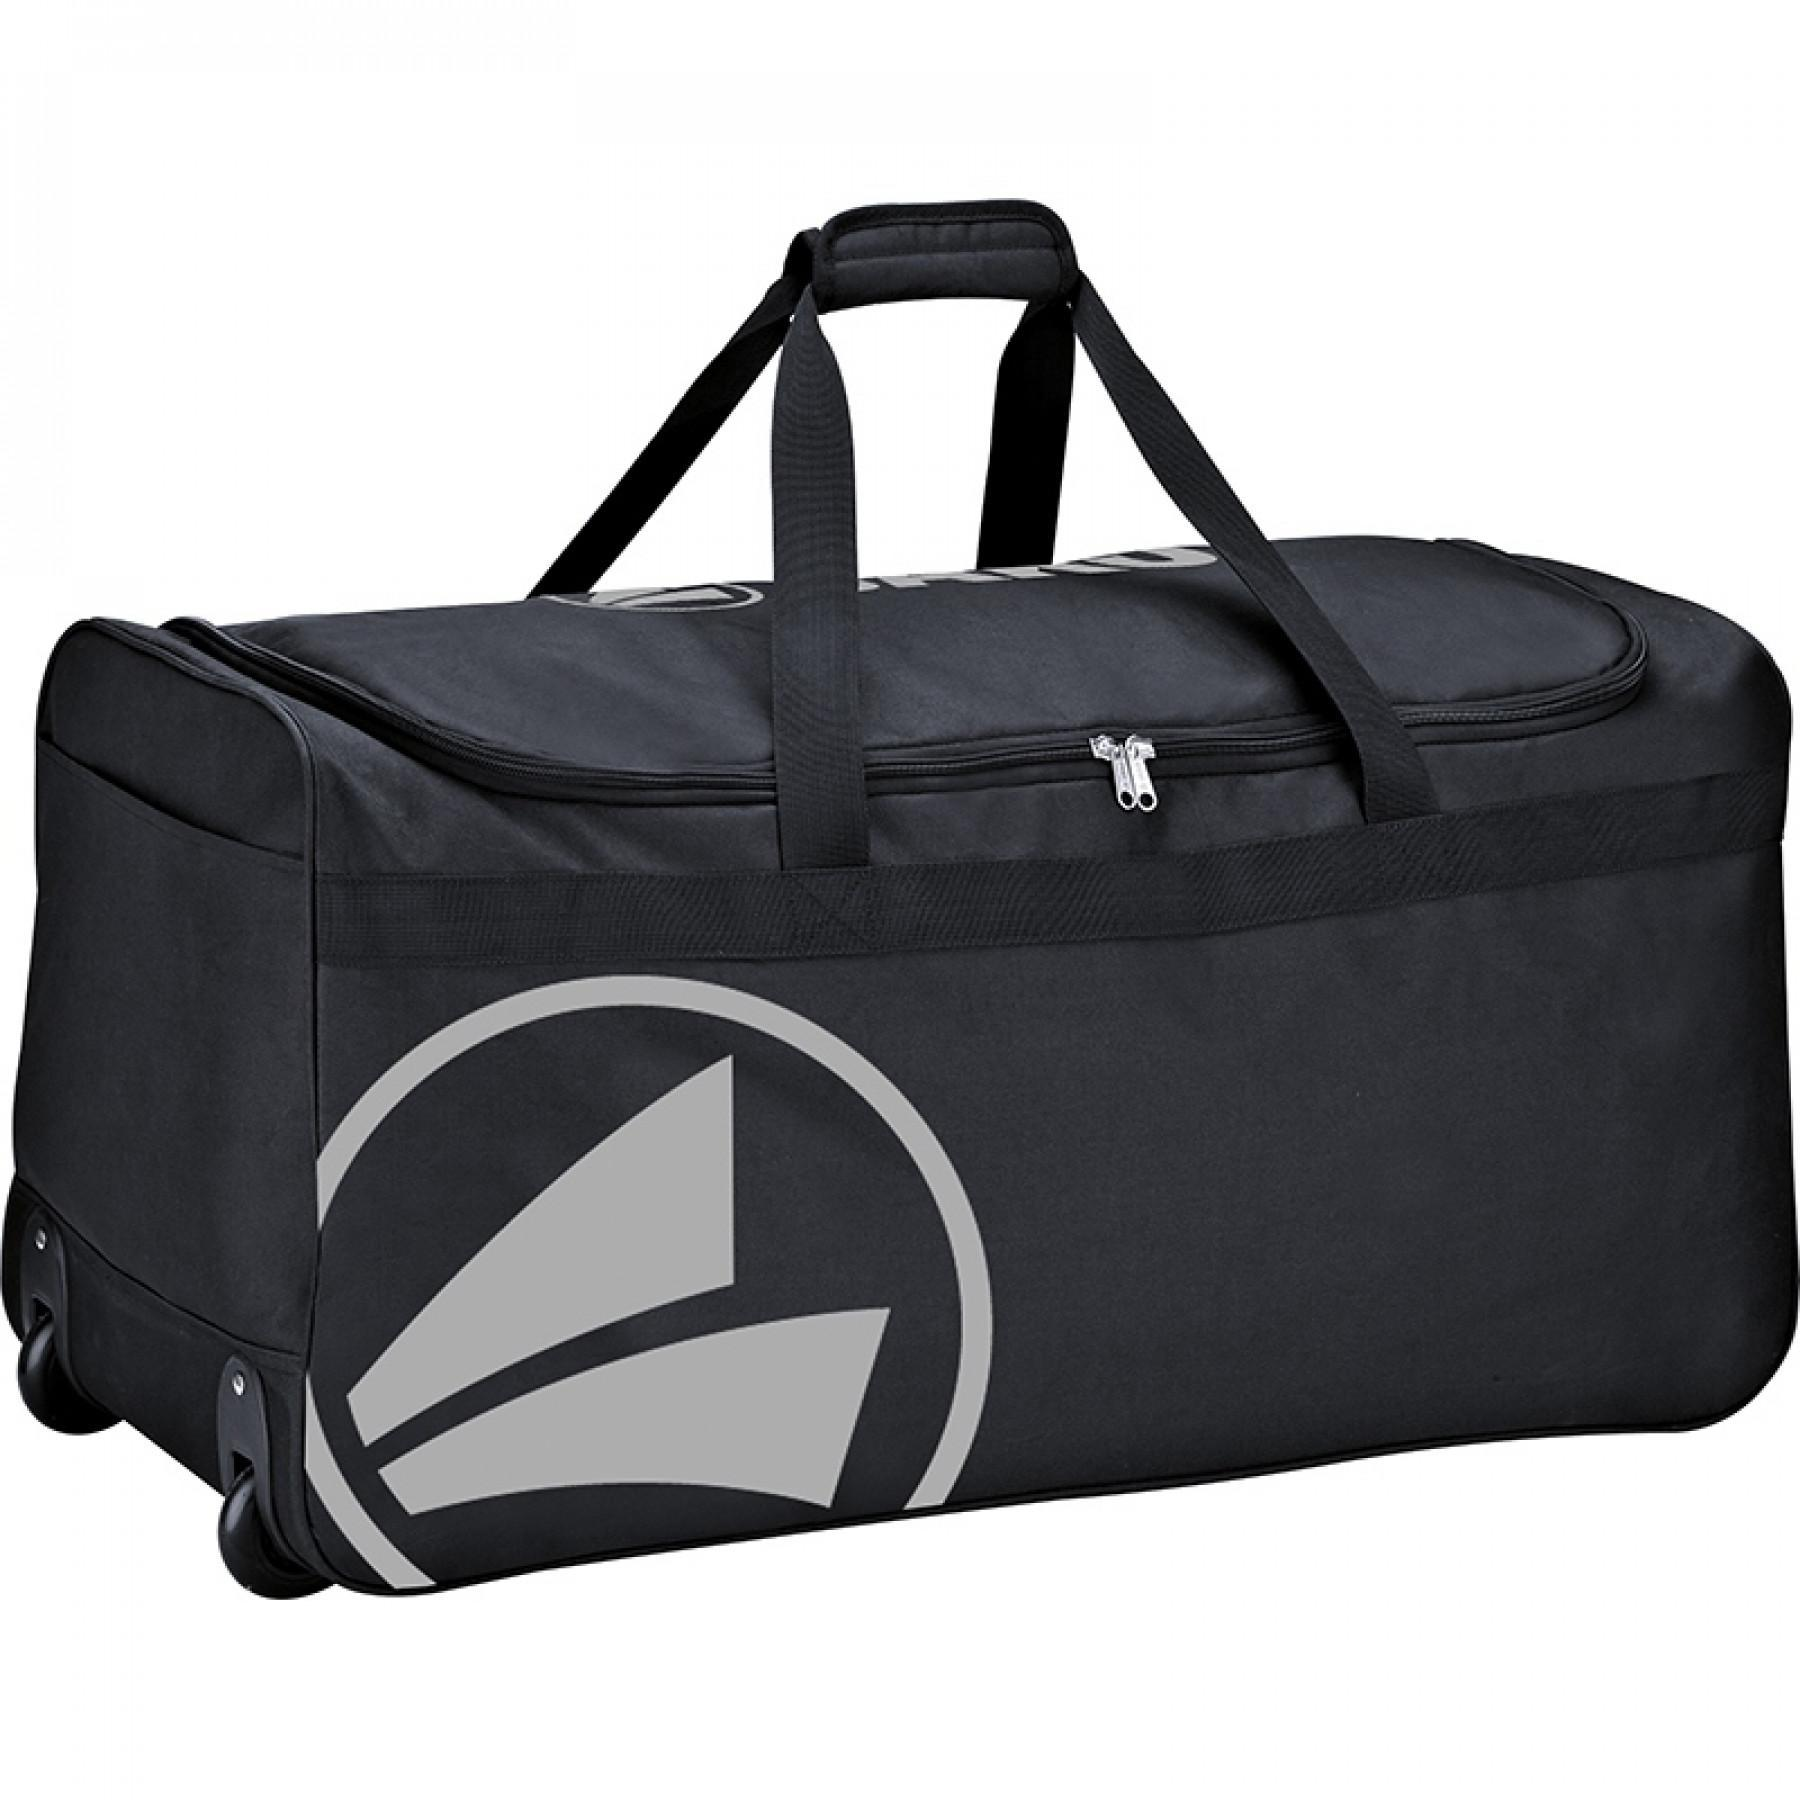 Sprot bag Jako trolley Classico